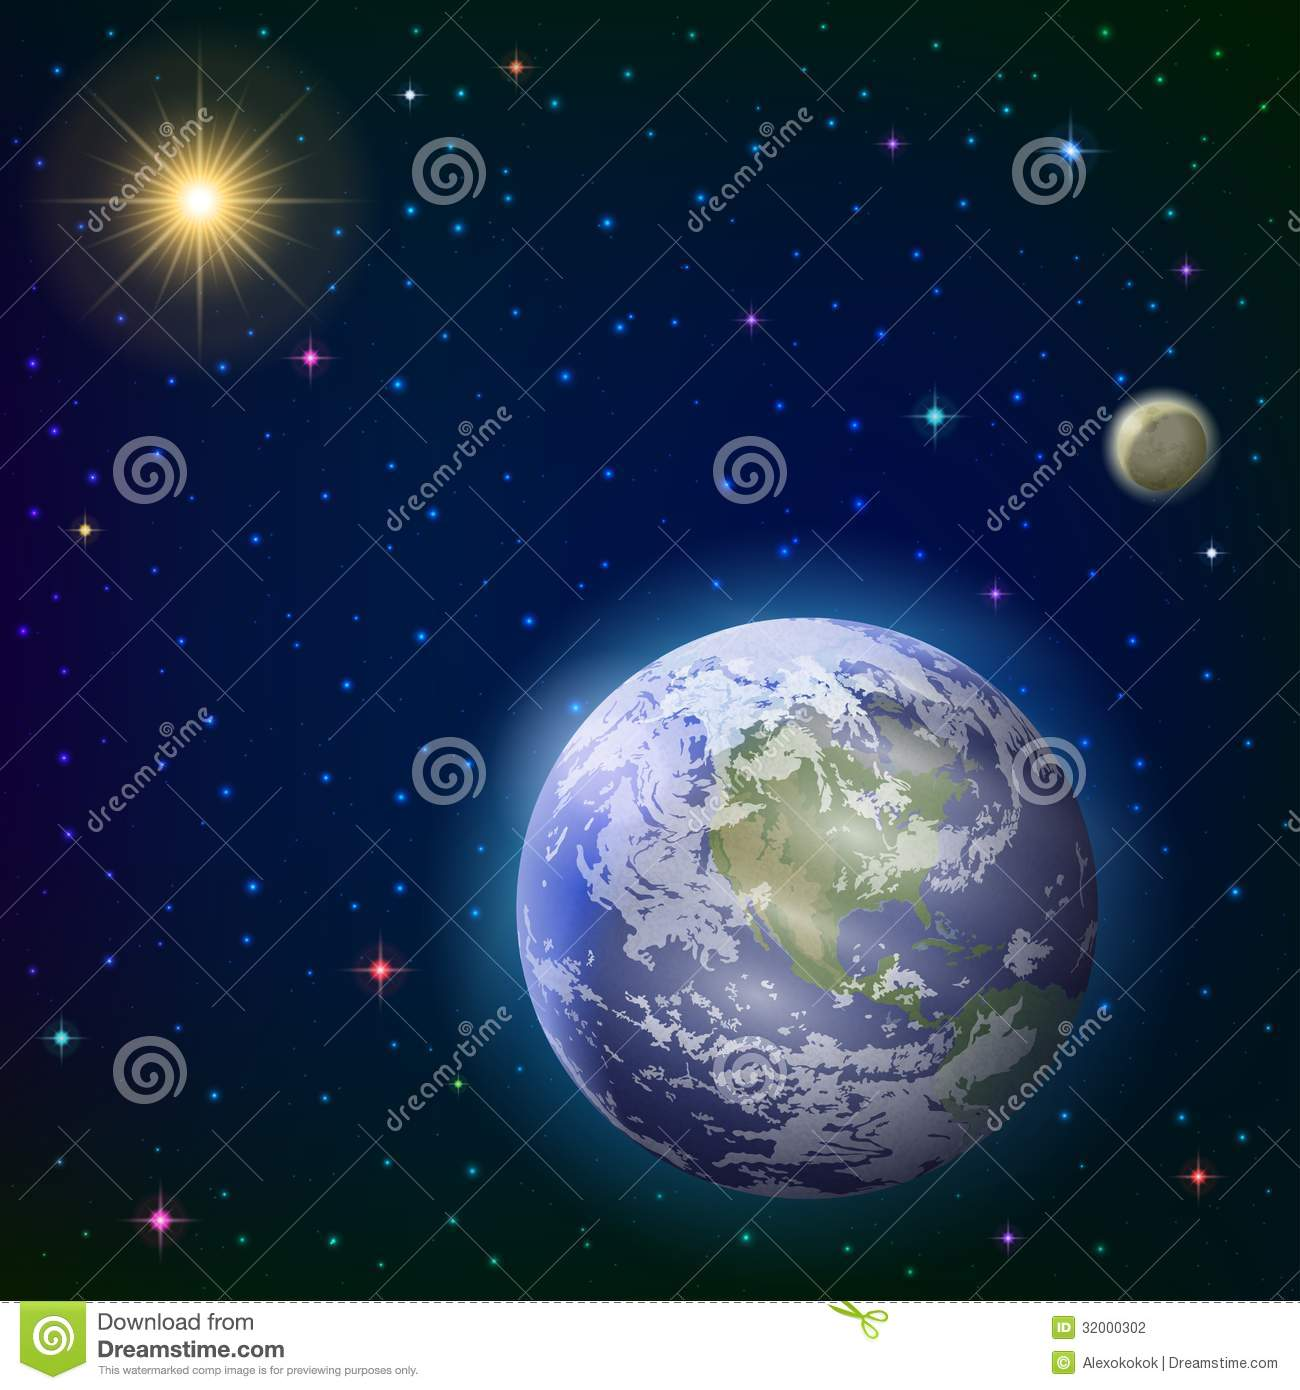 Earth, moon and sun stock vector. Image of astronomy ...